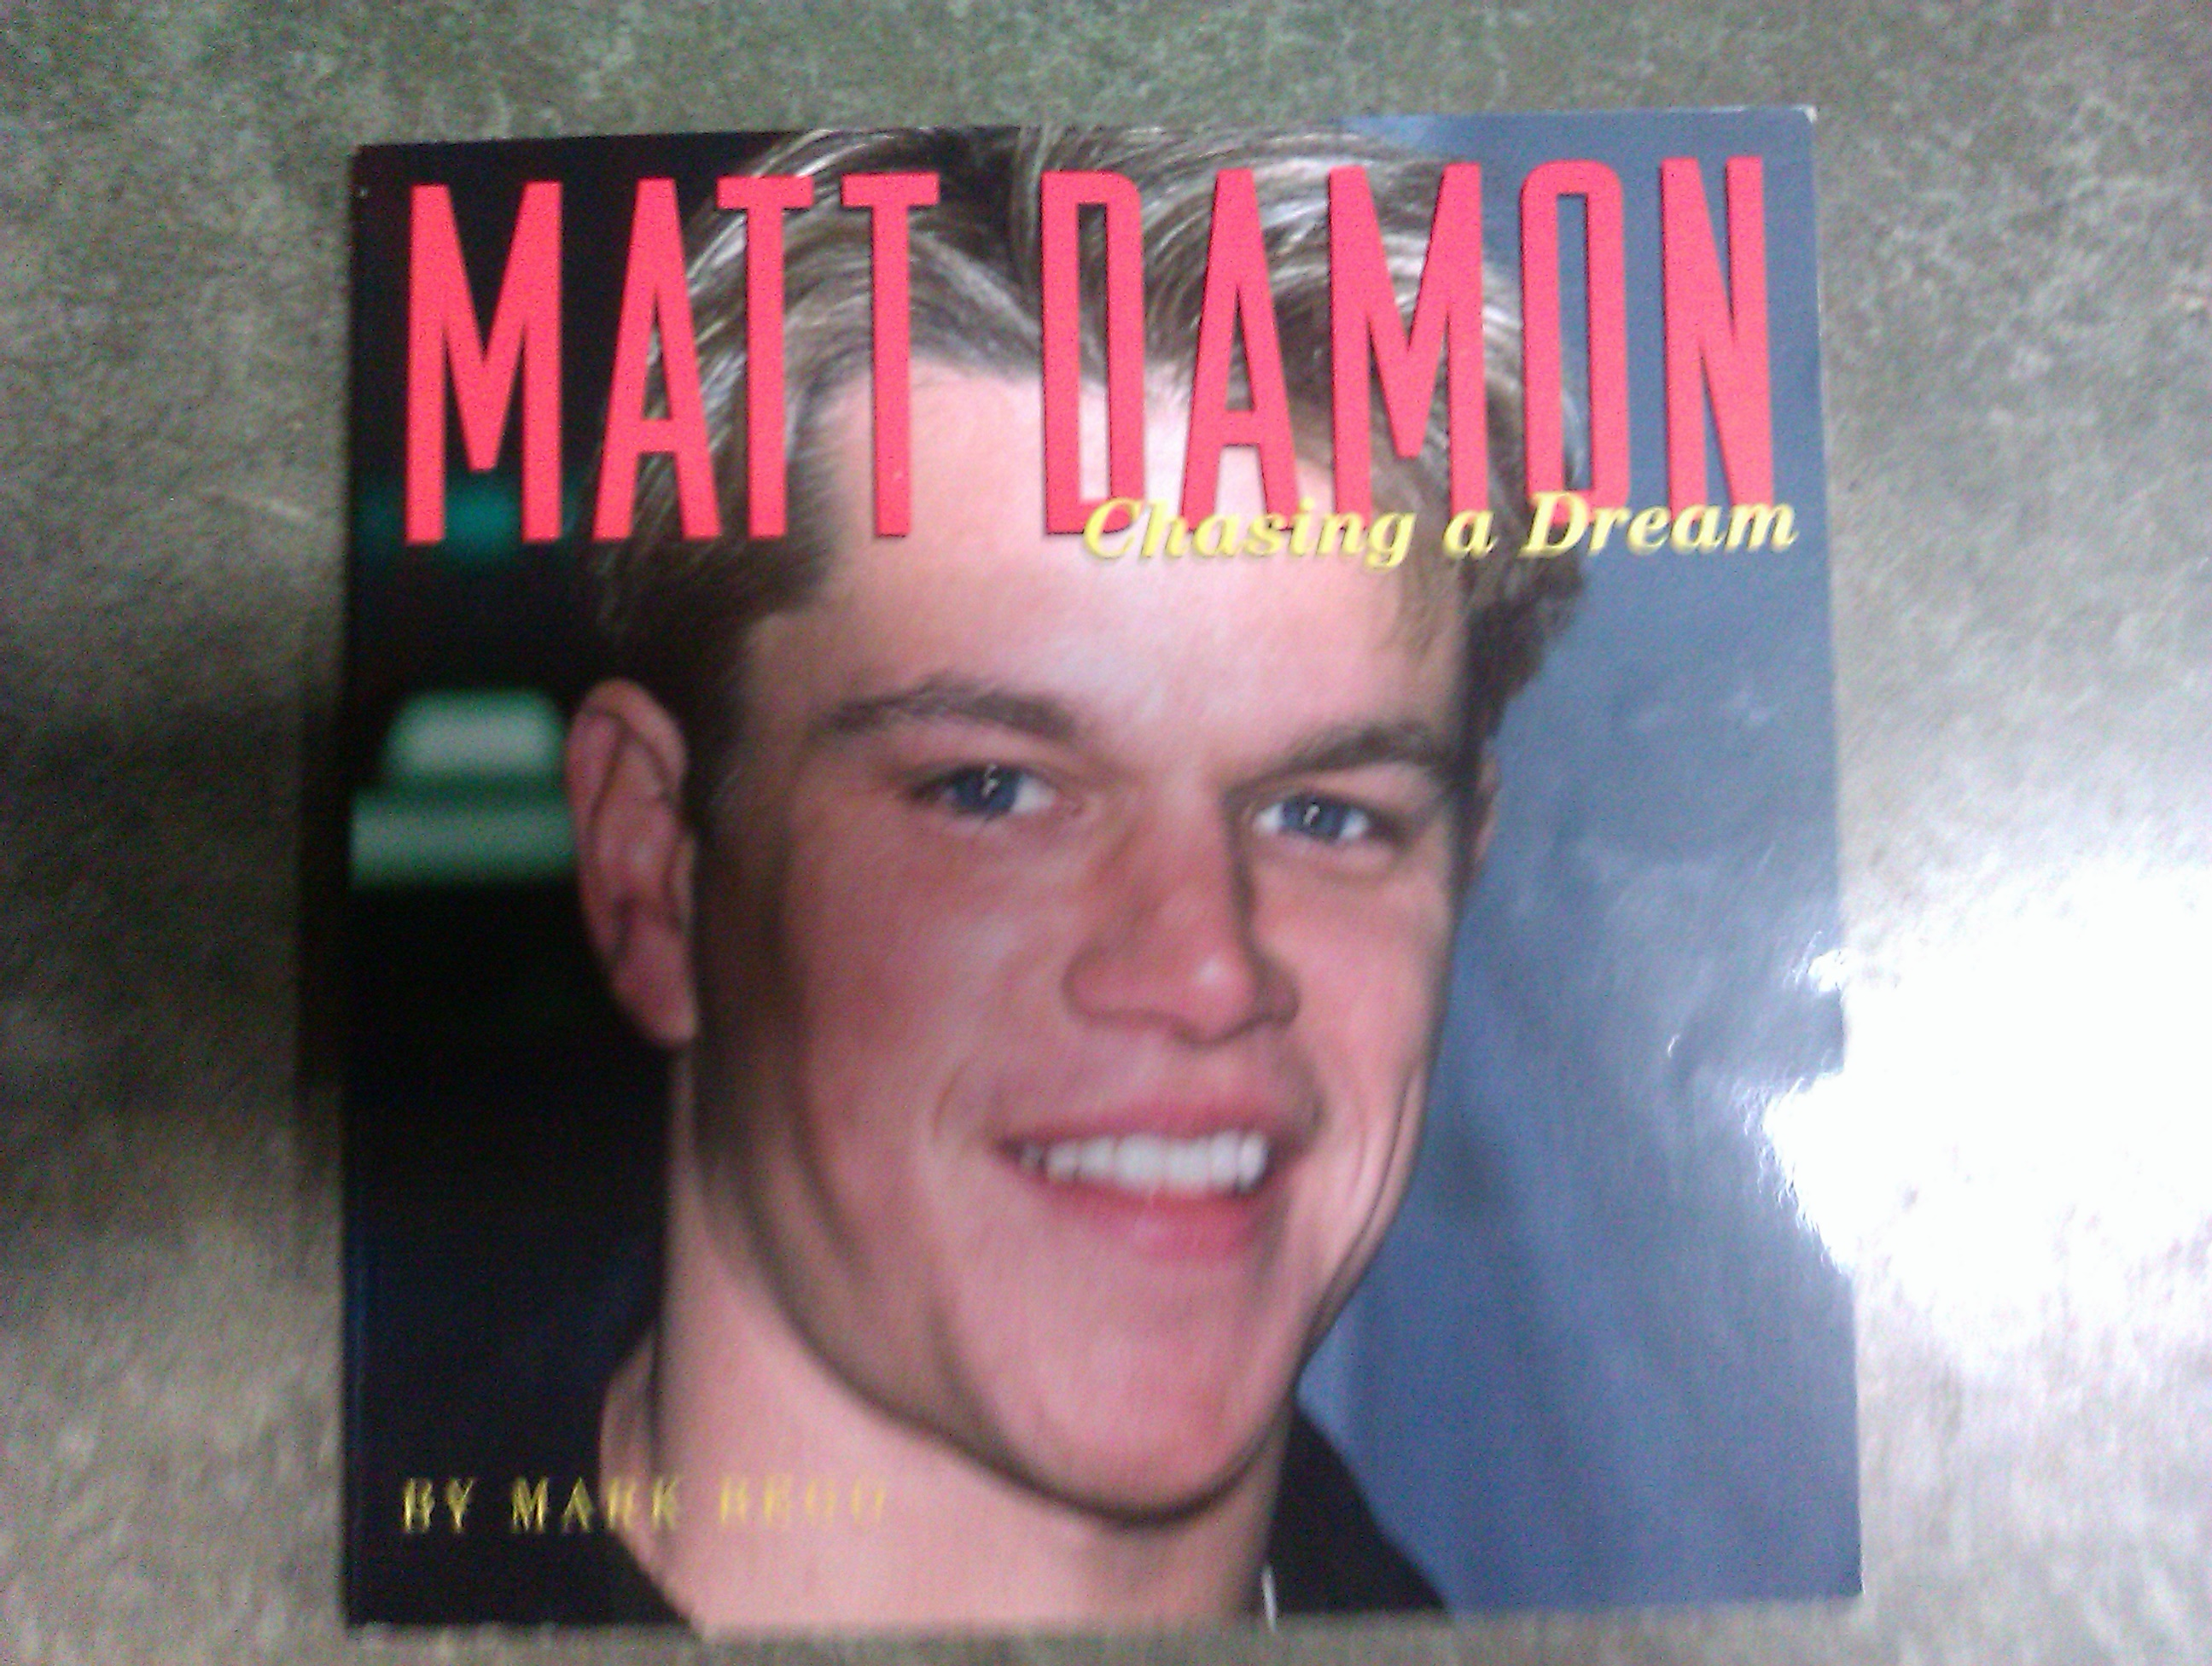 Matt_20damon_original